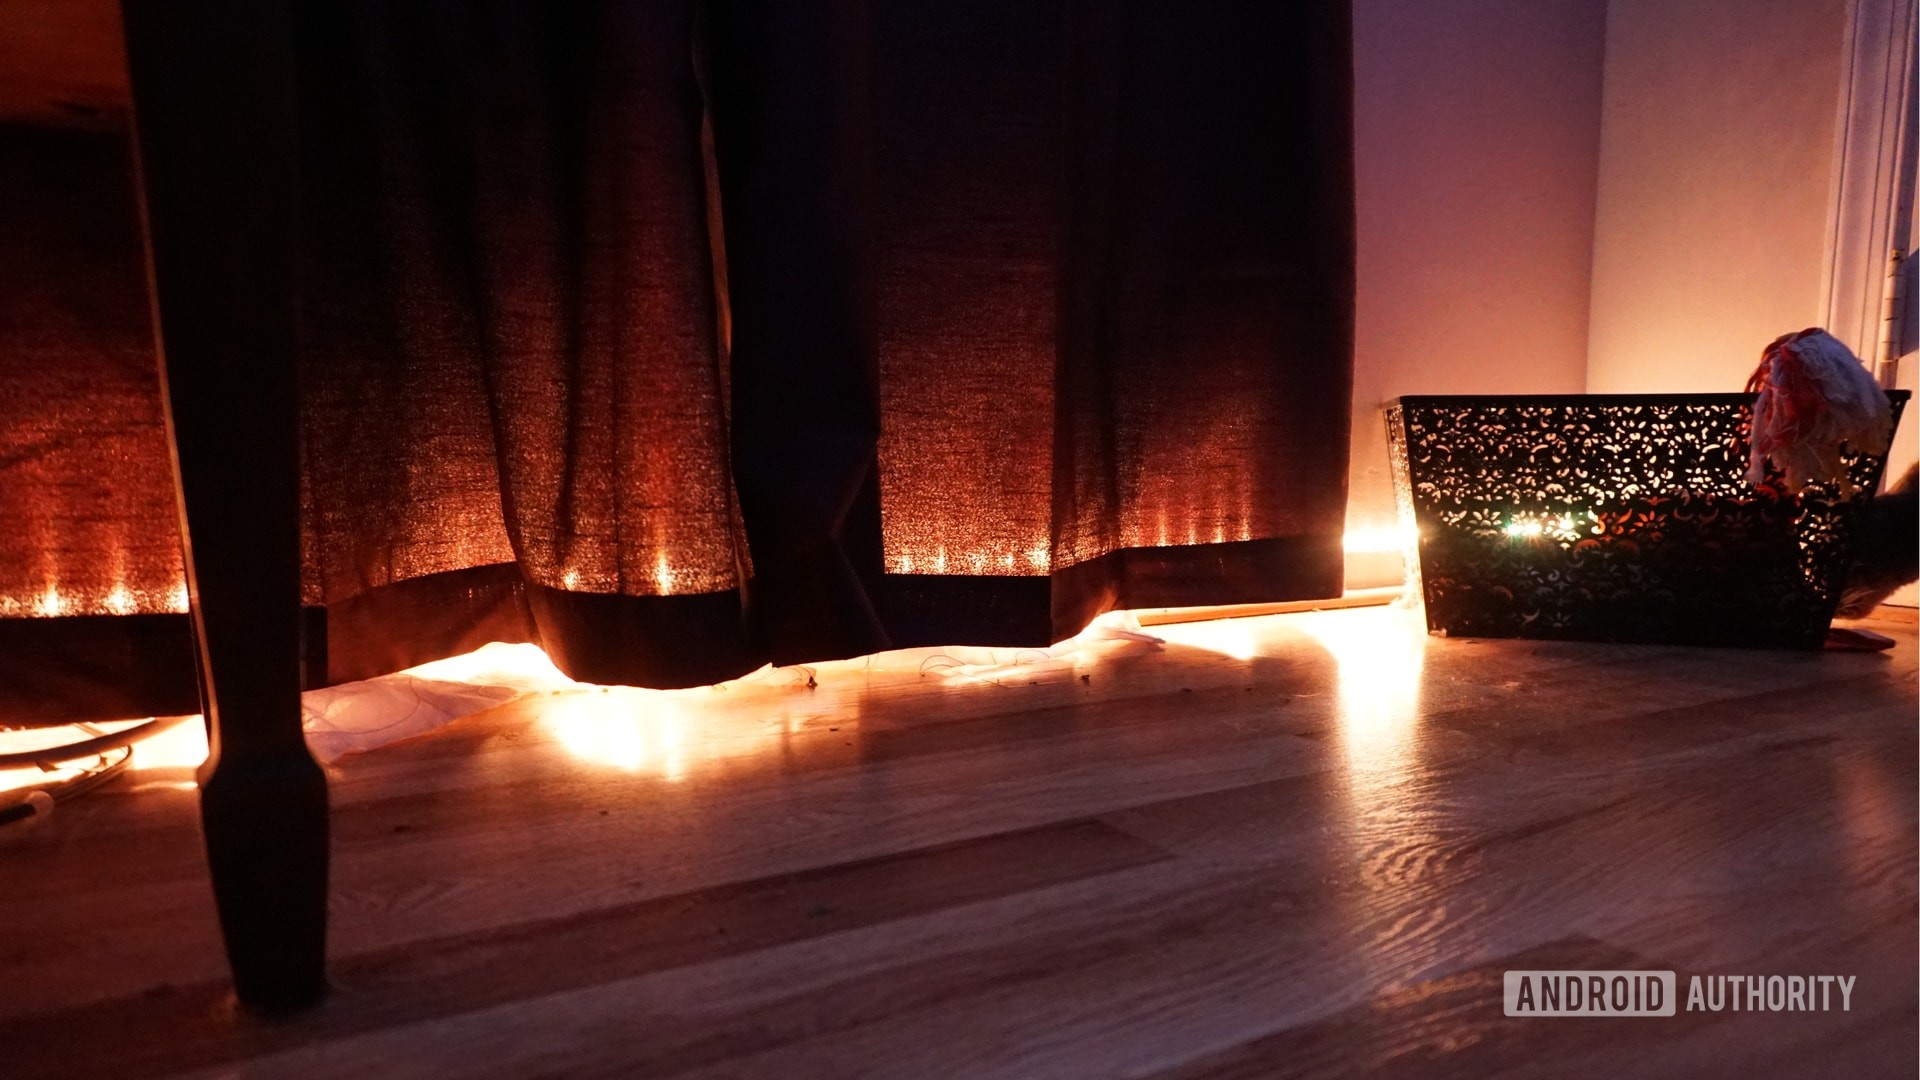 govee led strip lights review an